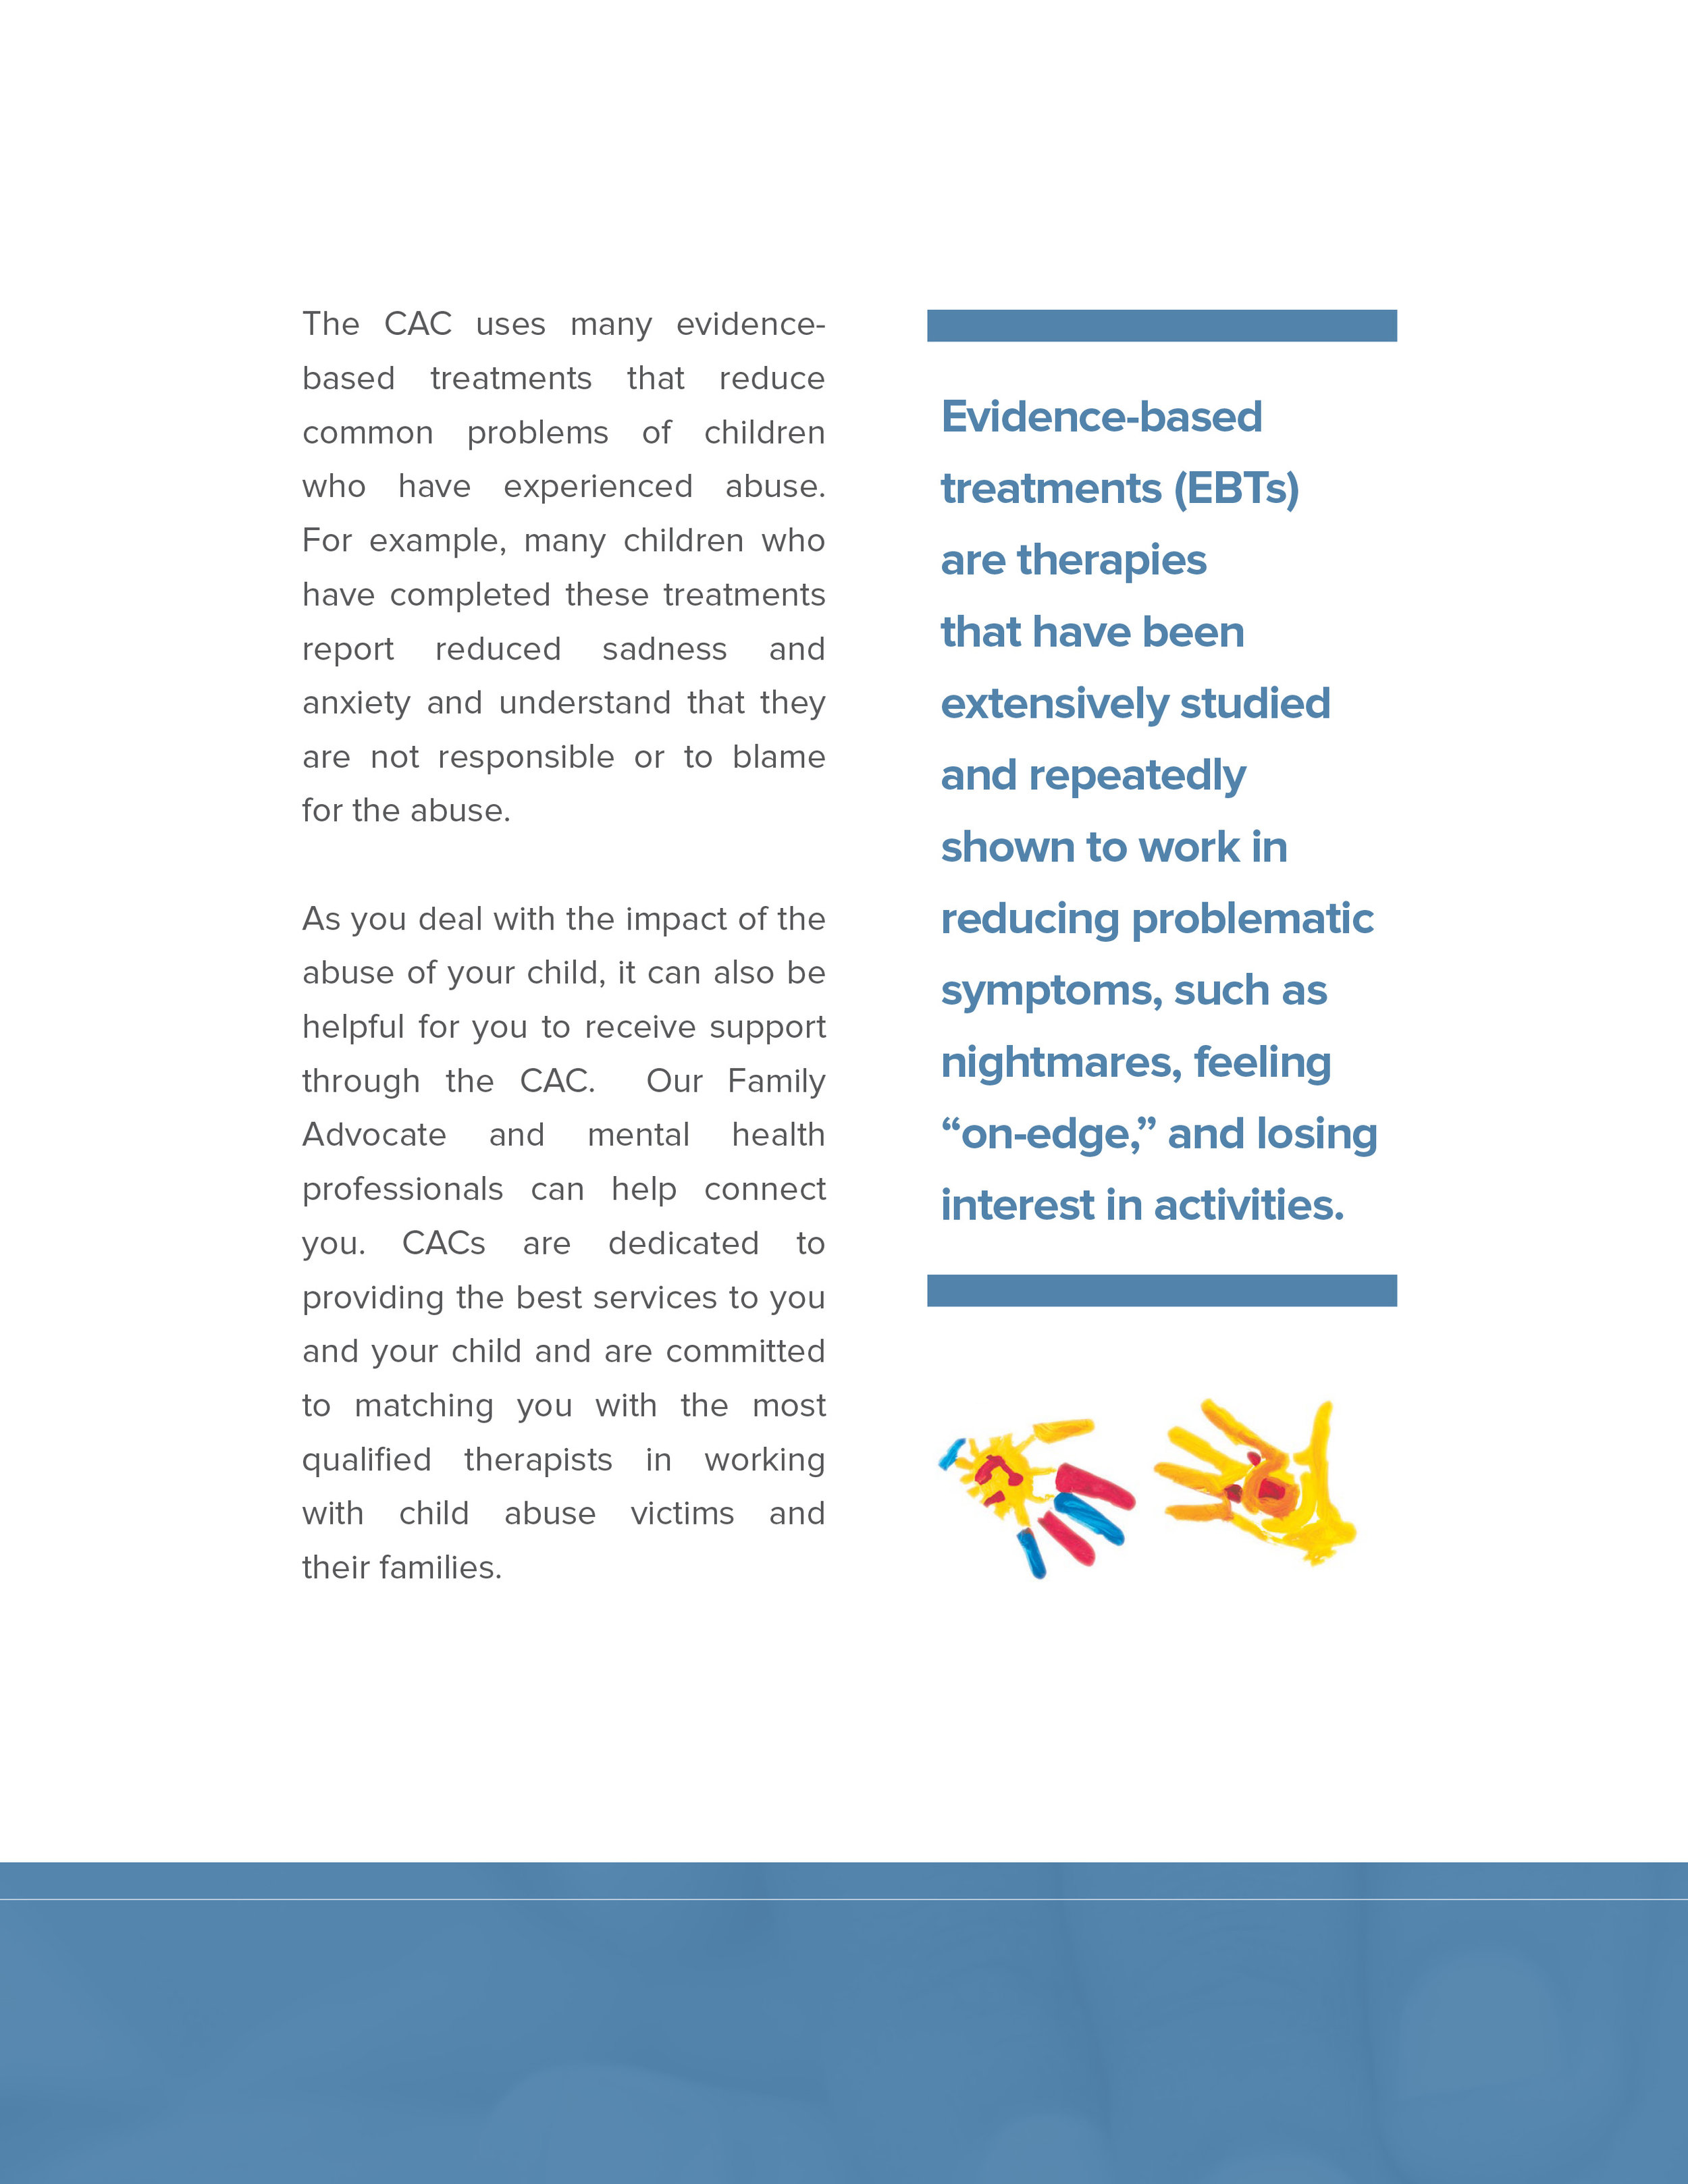 NCA Helping Your Children Heal From Abuse Brochure June2015 our logo-5 copy - Copy.jpg